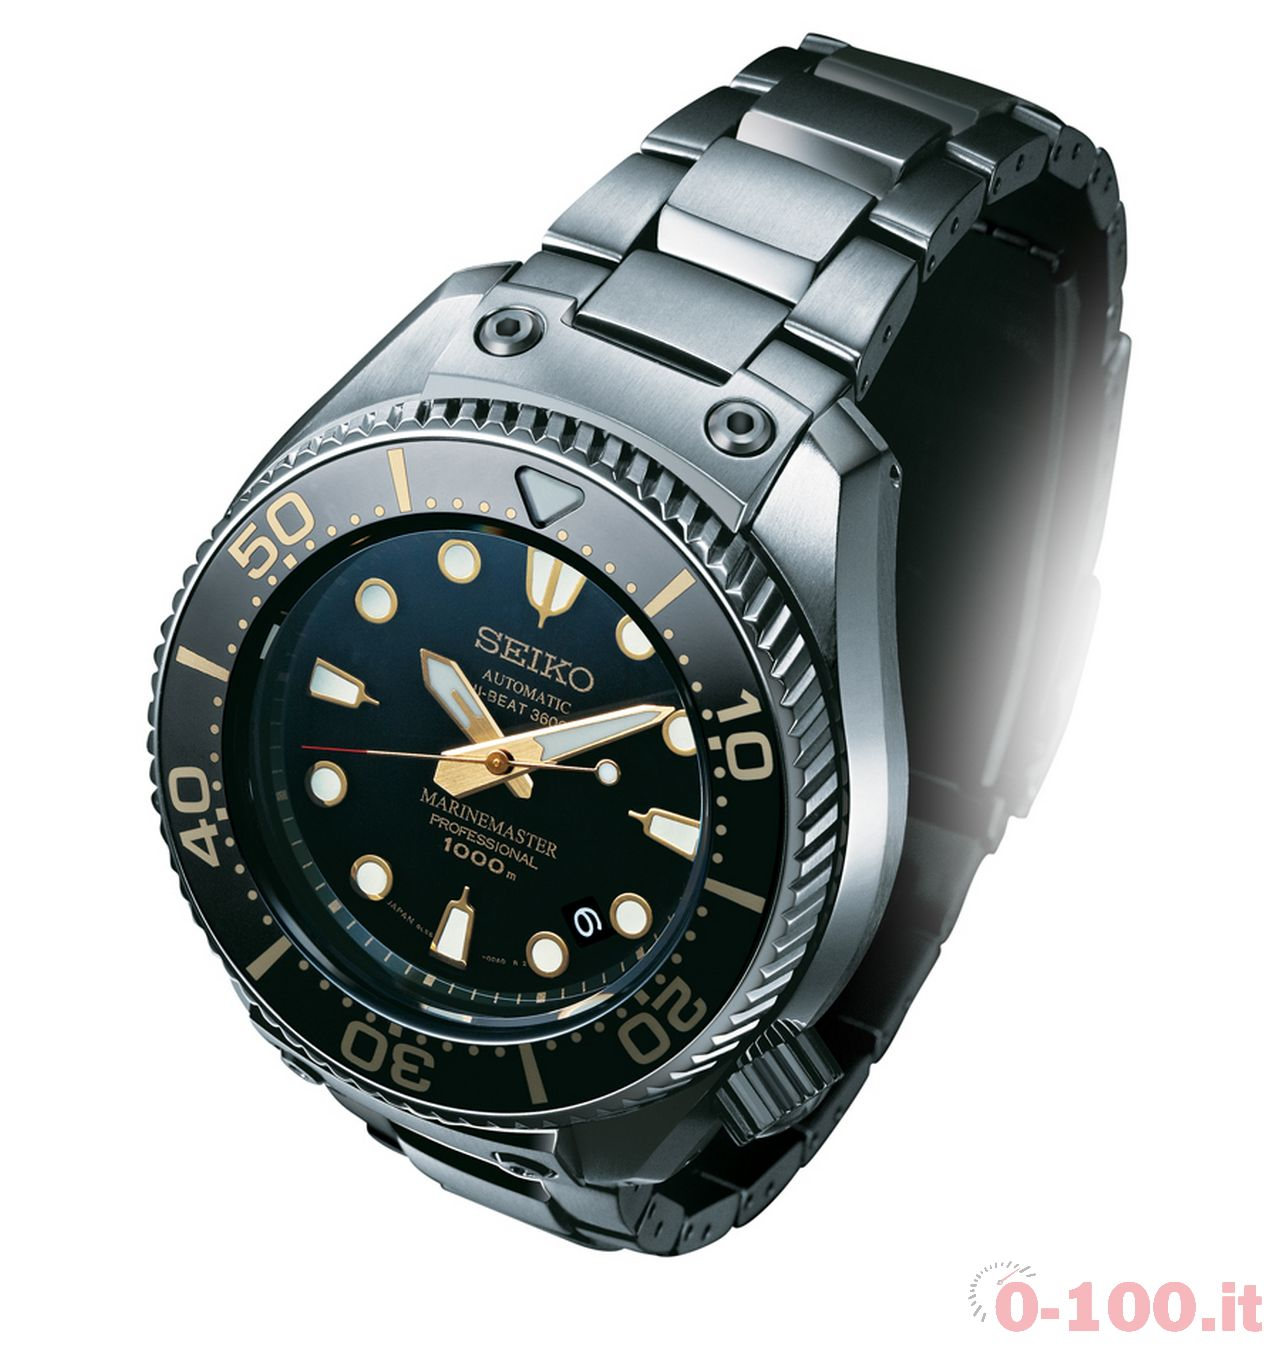 seiko-marinemaster-professional-1000-m-divers-hi-beat-36000-limited-edition-sbex001